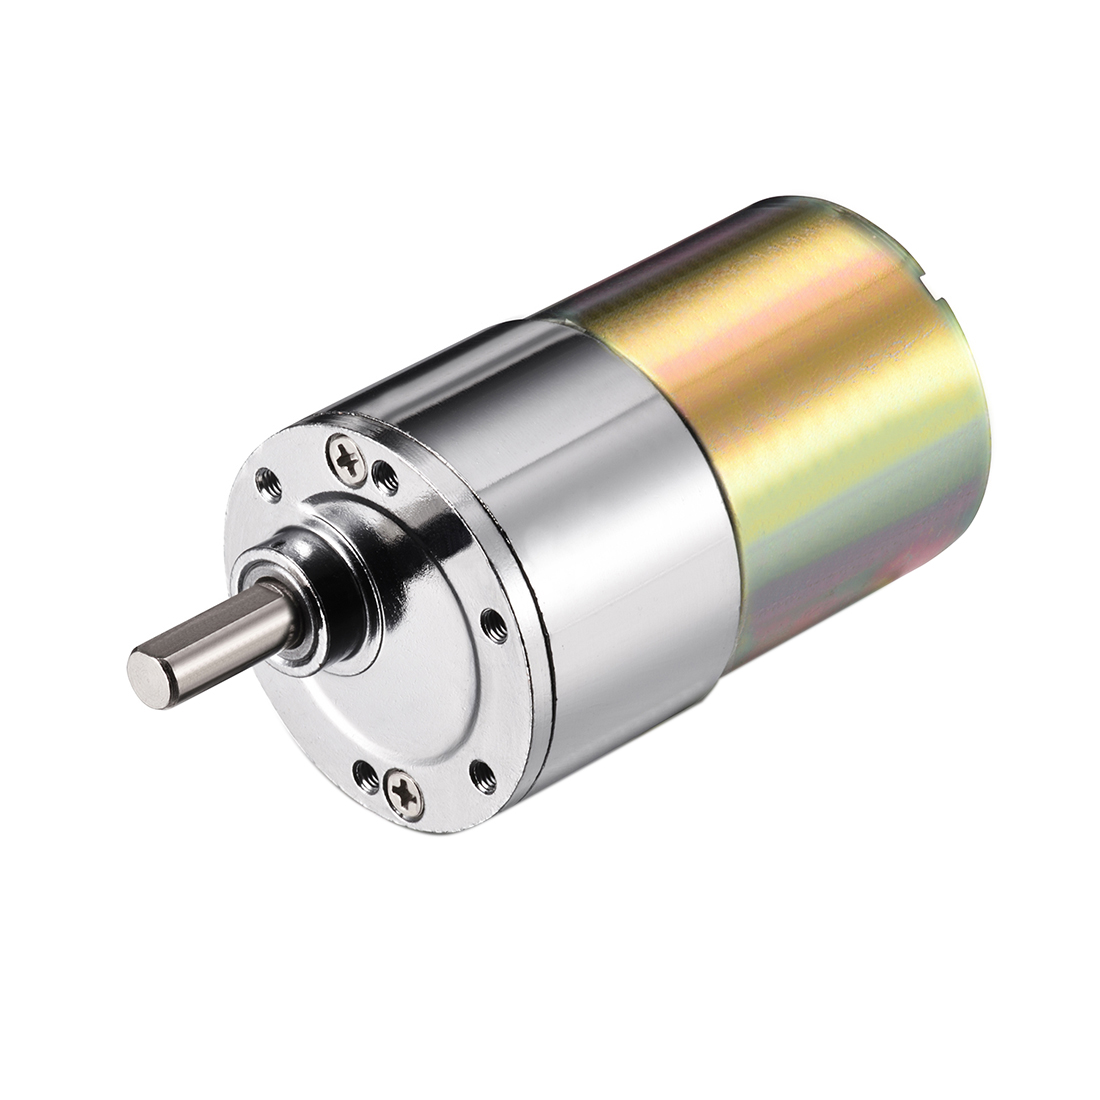 DC 24V 50RPM Micro Gear Box Motor Speed Reduction Electric Gearbox Eccentric Output Shaft